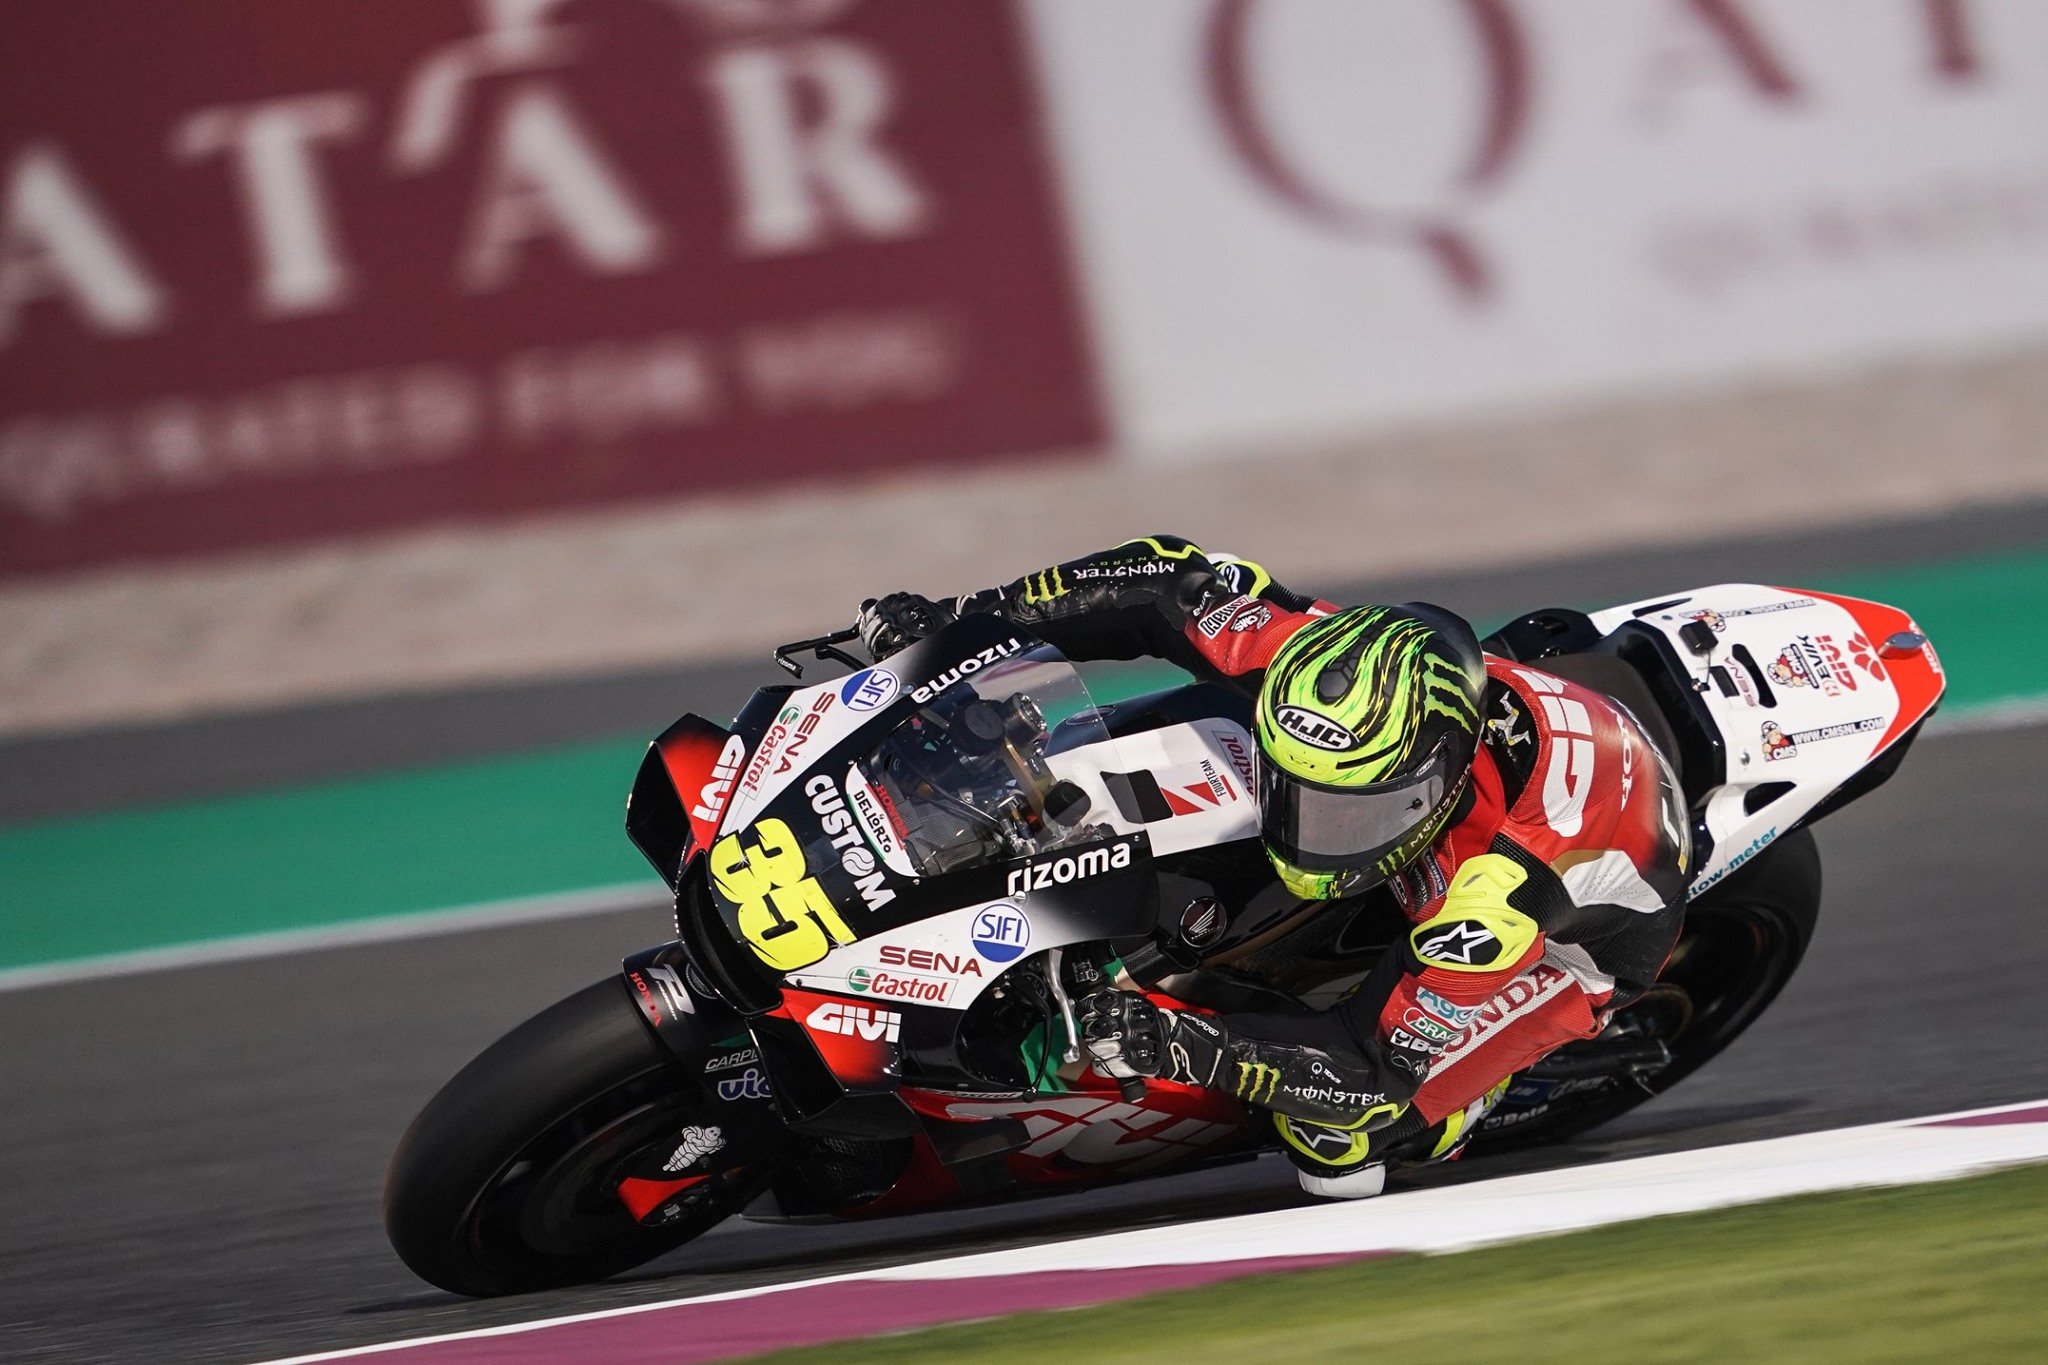 Turn two spill brings early end to 2nd day of testing for Crutchlow